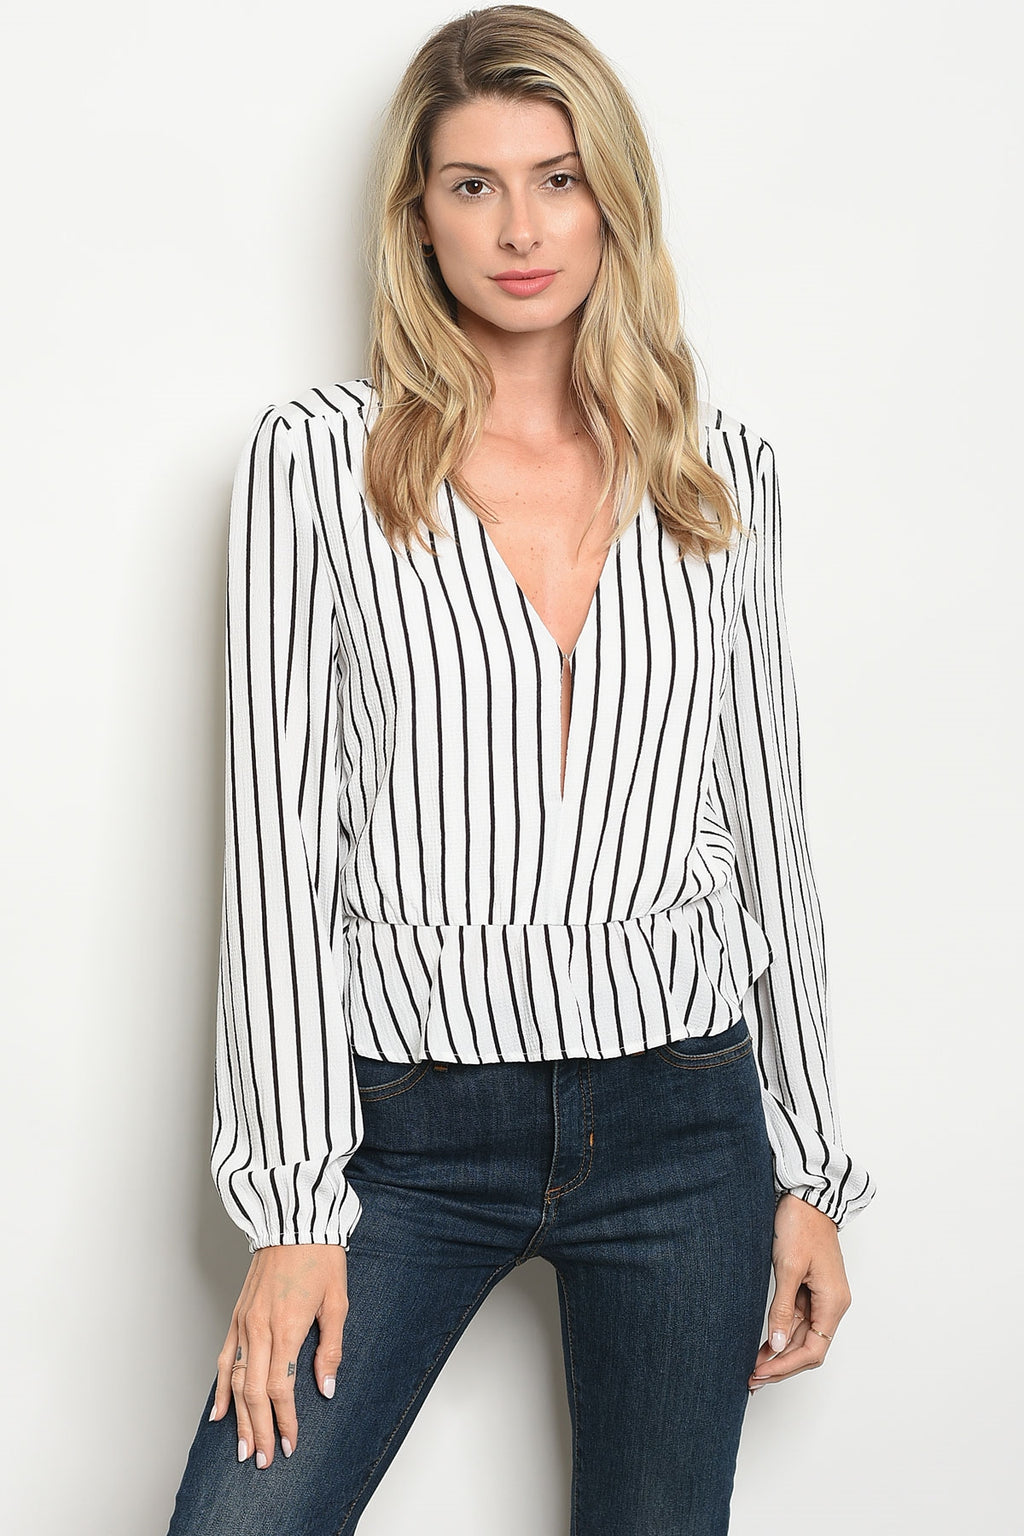 Baby Be Line Striped Top (White)